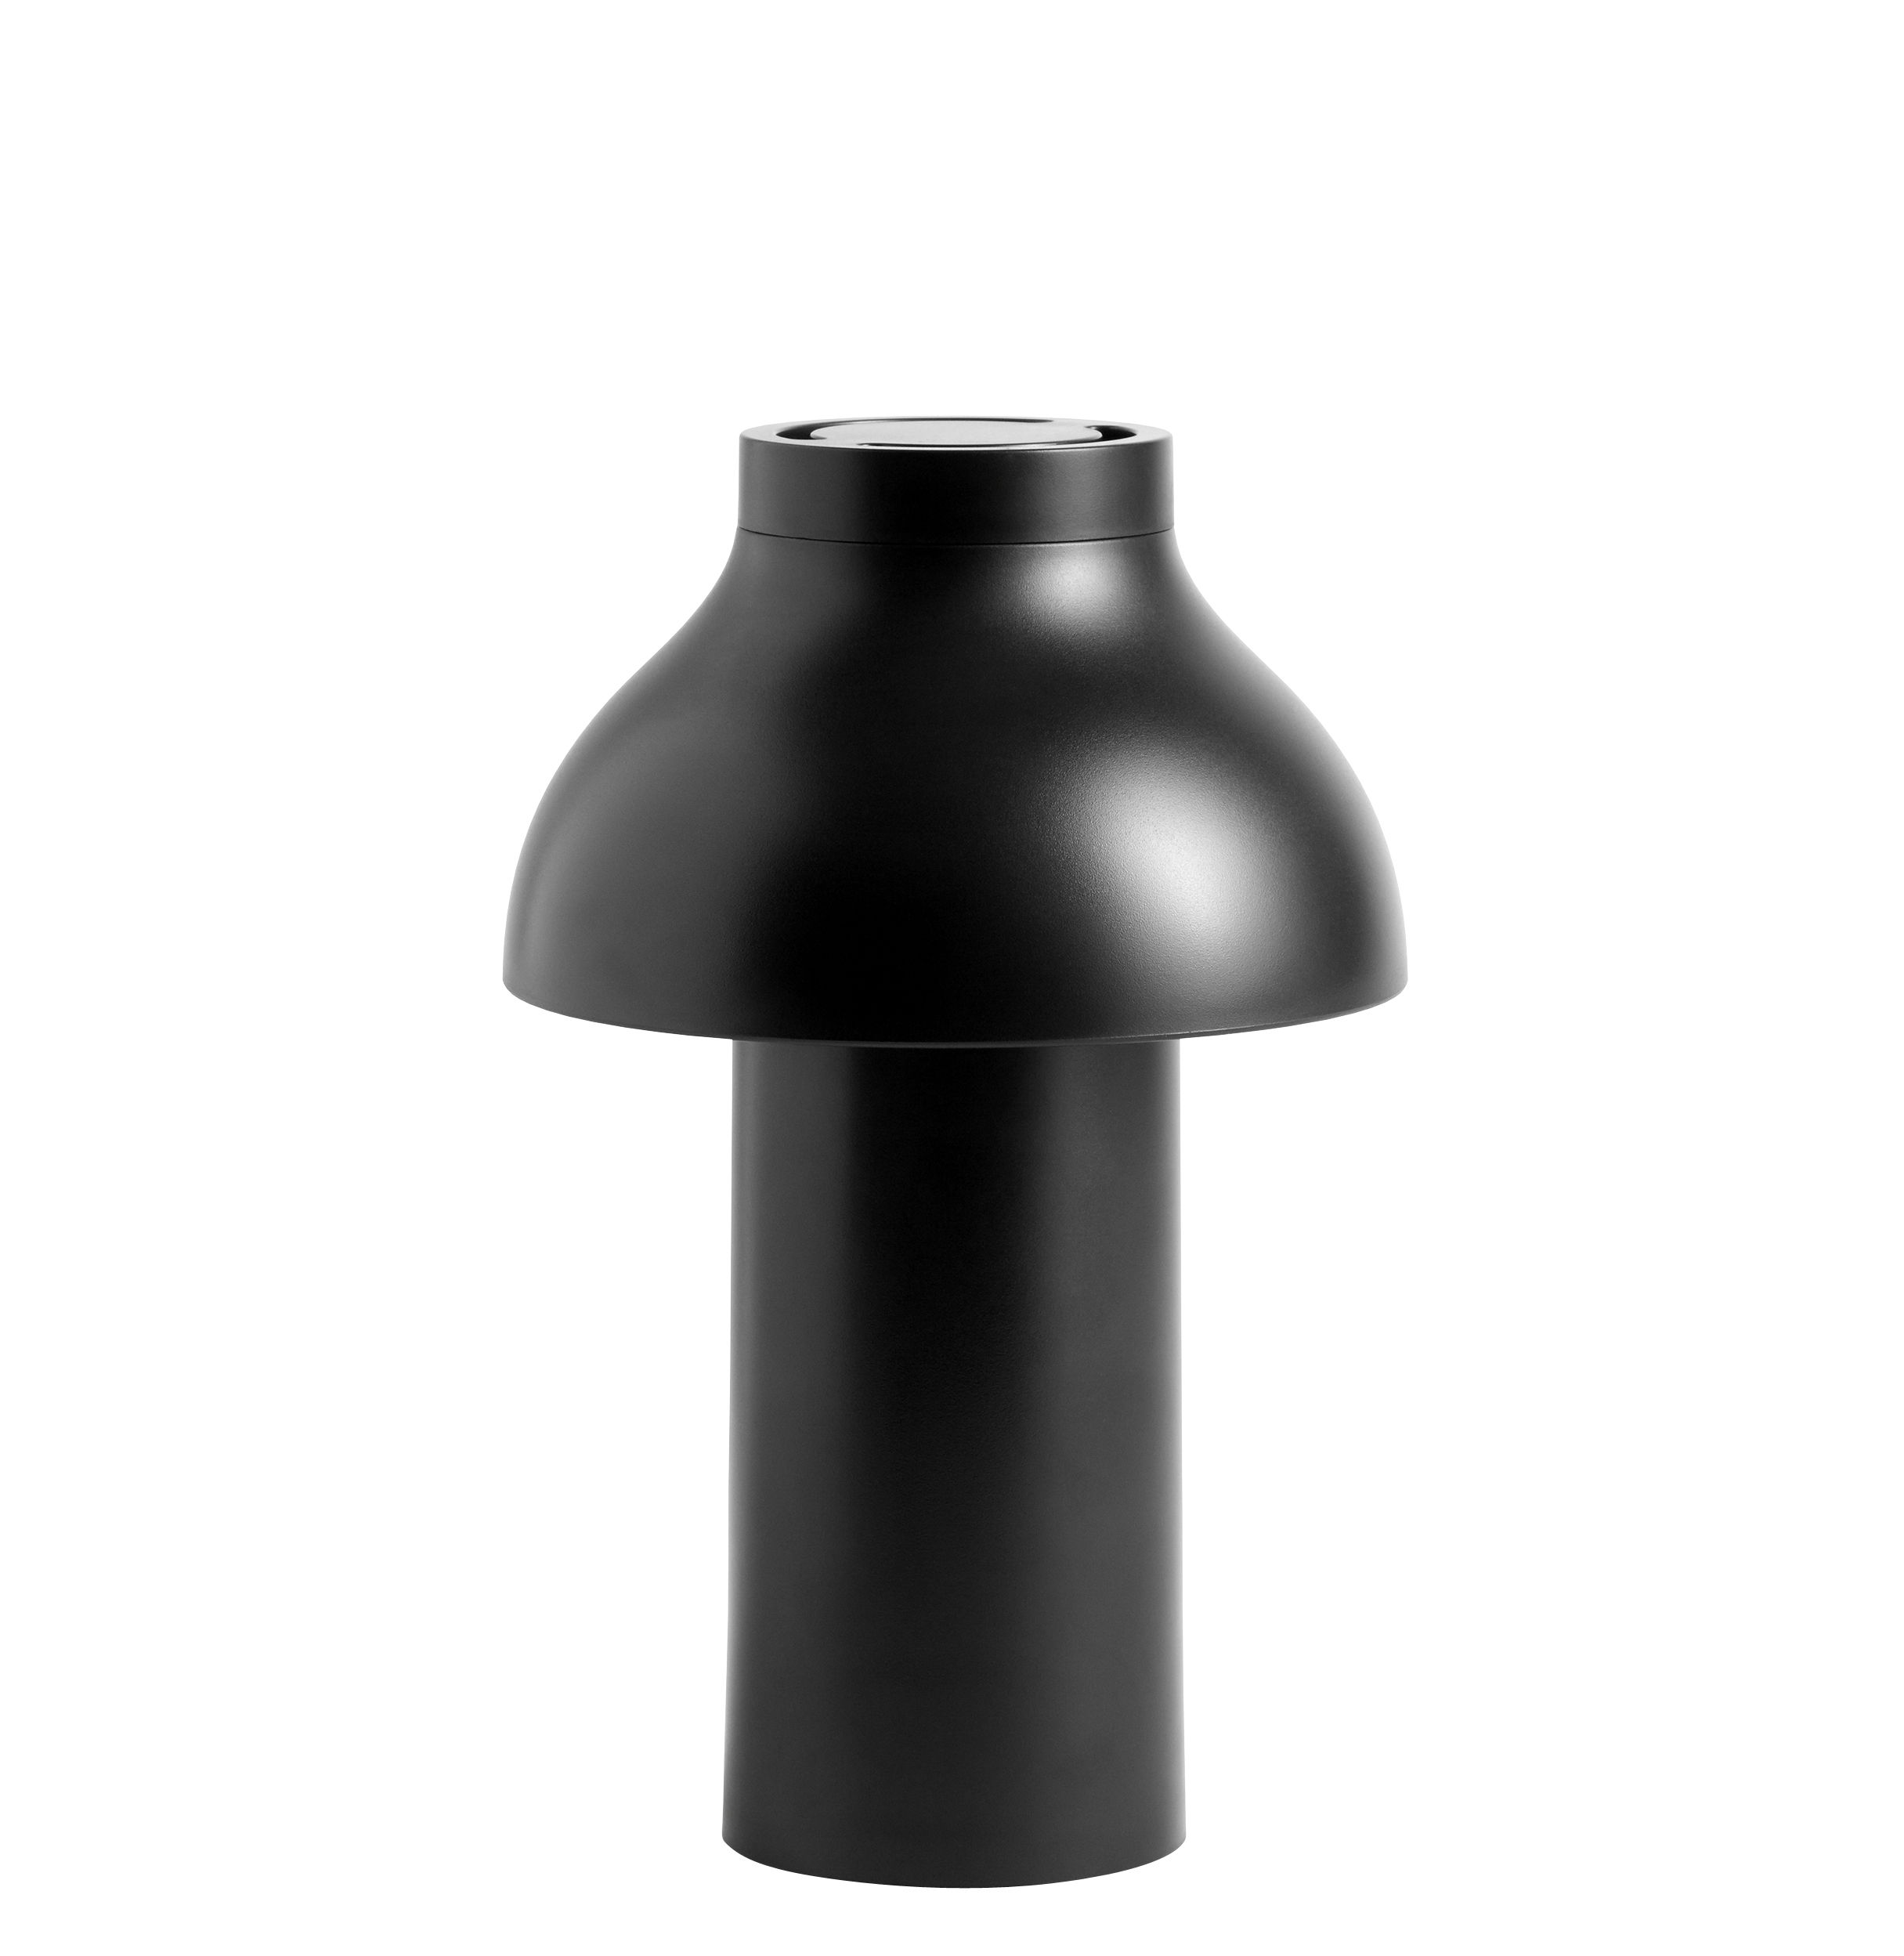 Lighting - Table Lamps - PC Portable LED Wireless lamp - / For outdoor use - USB charging by Hay - Black - ABS